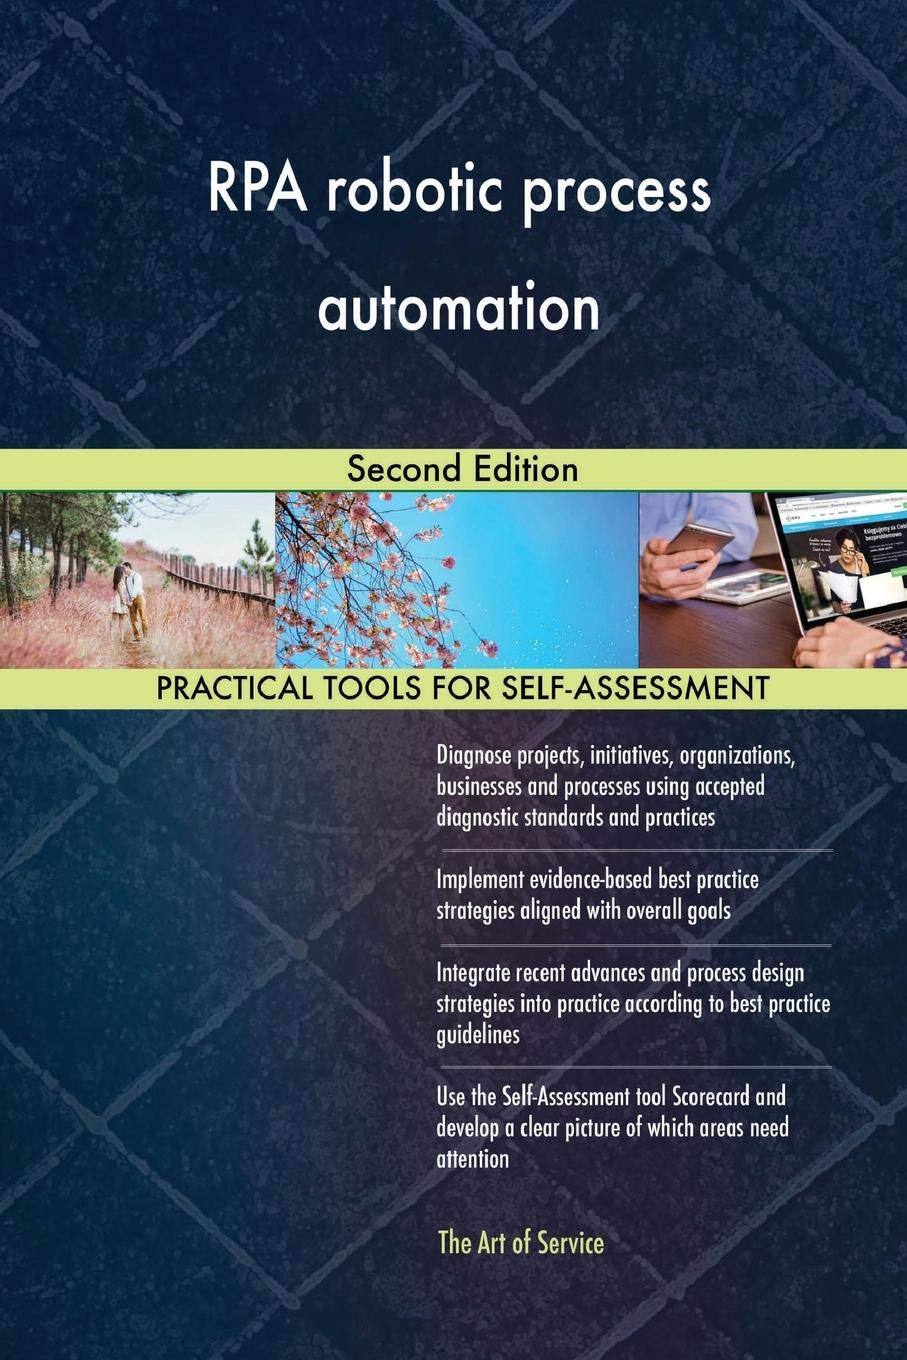 RPA robotic process automation Second Edition: Gerardus